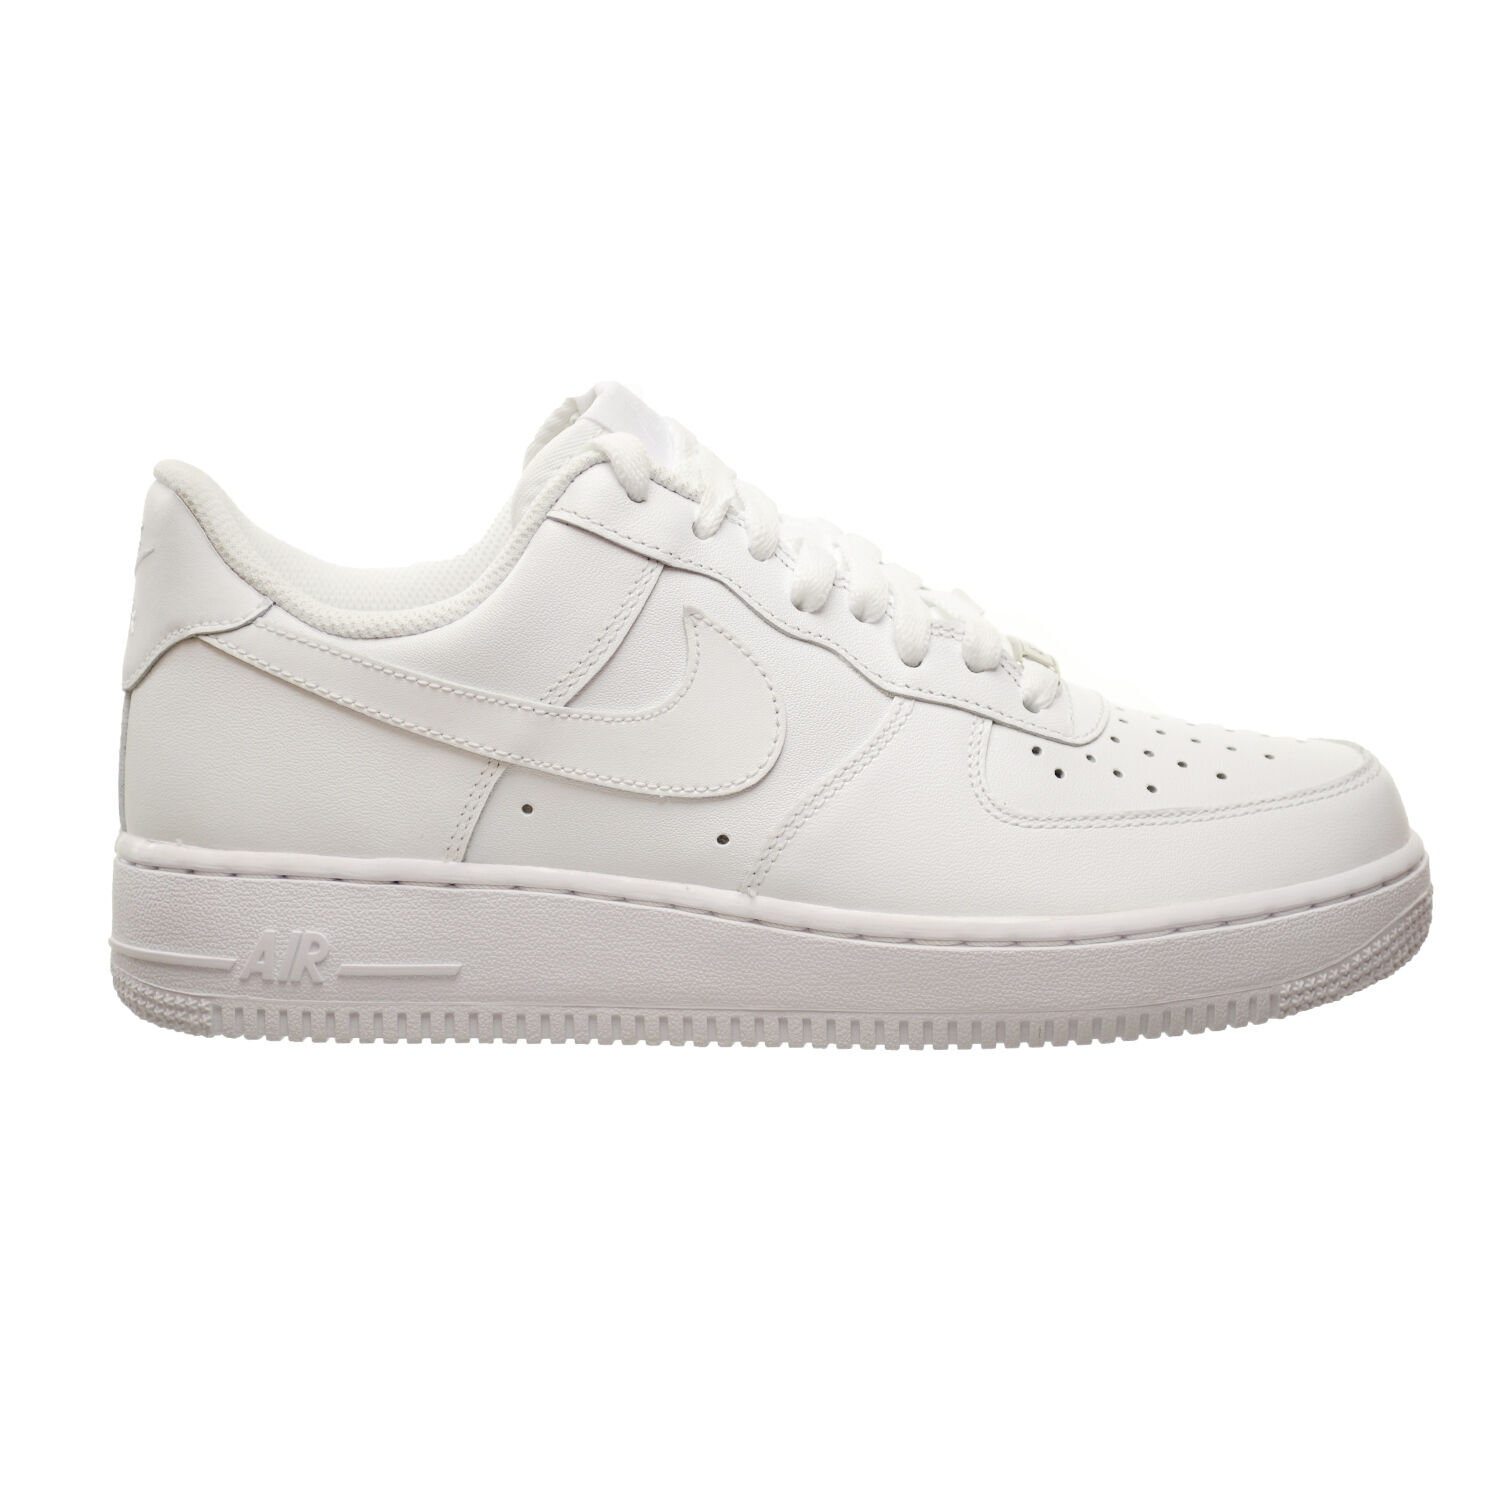 Nike Air Force 1 '07 Women's Shoes White/White